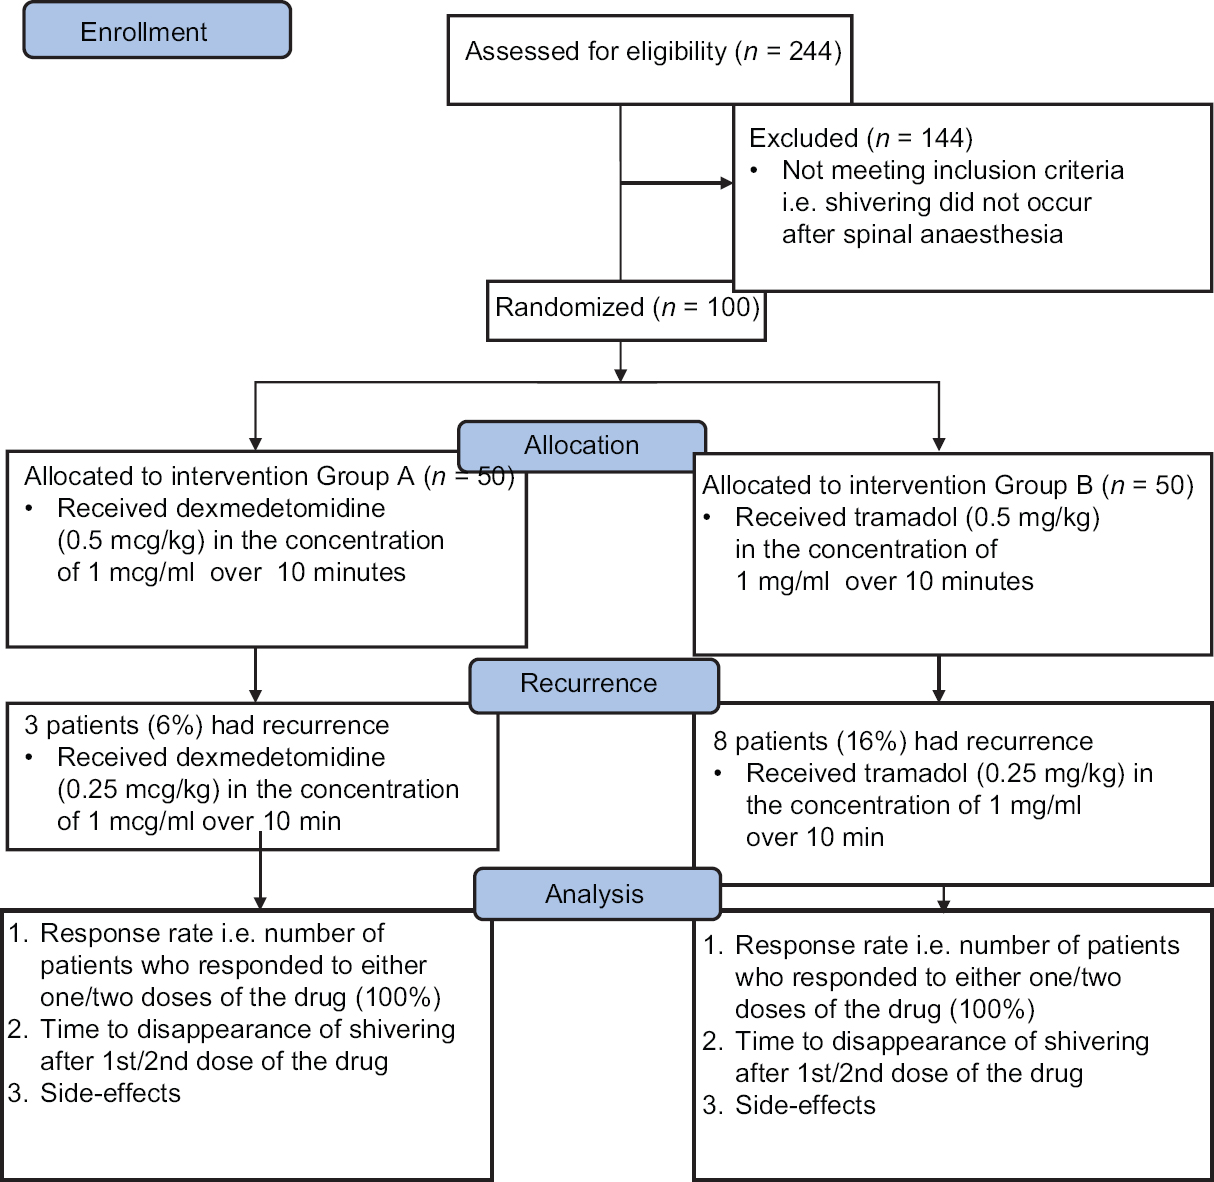 A Comparative Study On The Efficacy Of Dexmedetomidine And Tramadol